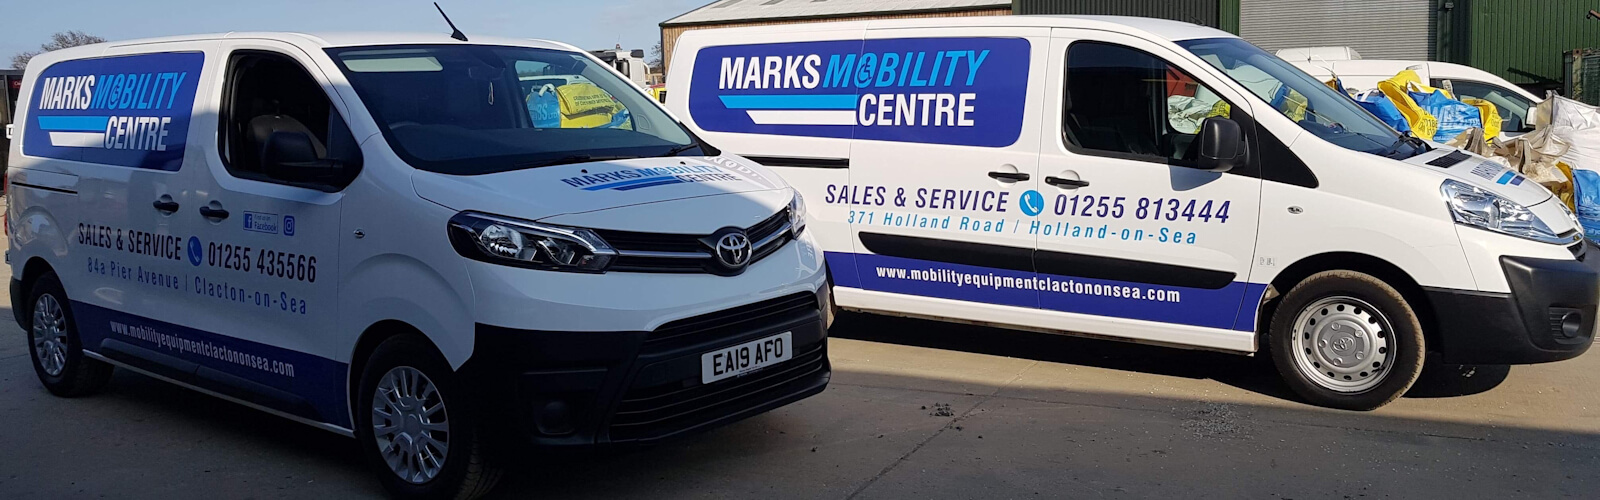 Marks Mobility Centre Ltd